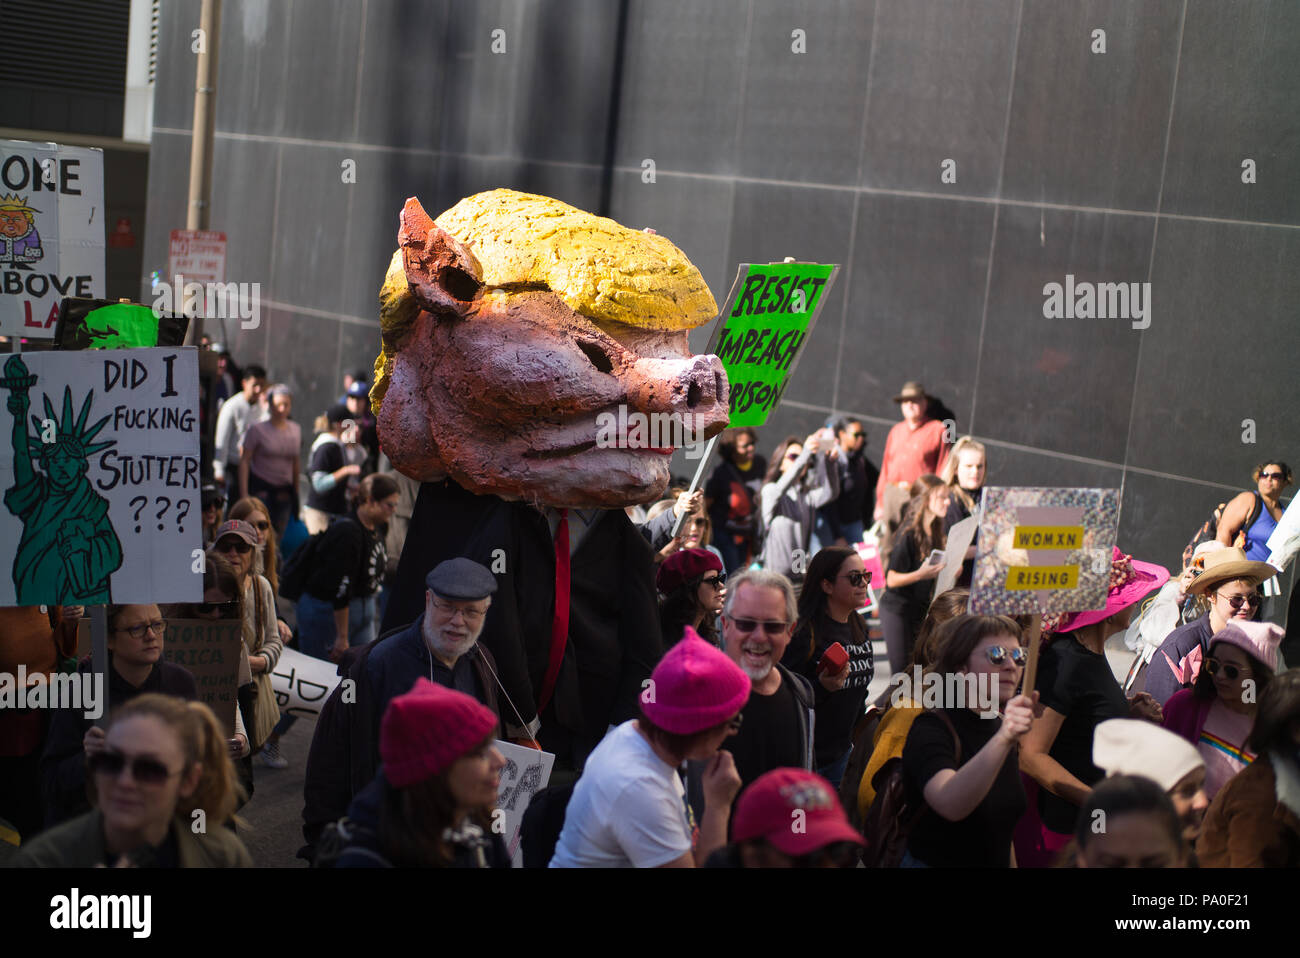 Trump Is A Pig Stock Photos & Trump Is A Pig Stock Images - Alamy